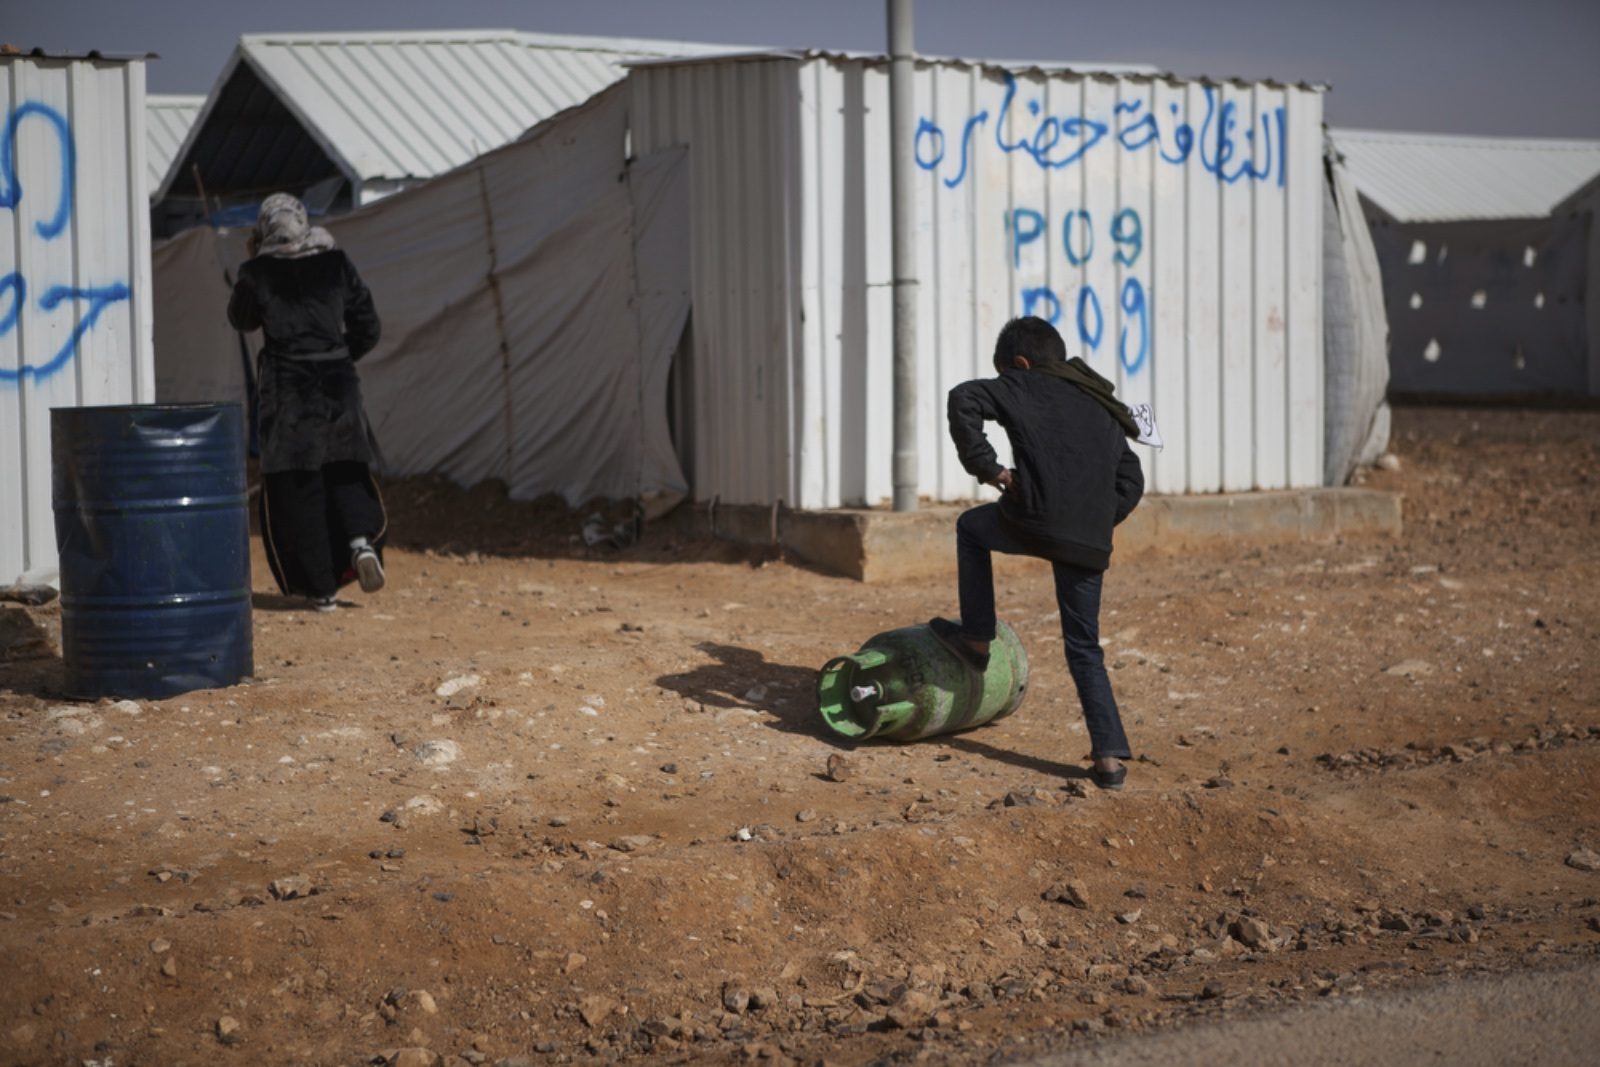 A young boy pushes a gas tank up a street in Azraq refugee camp, January 19, 2016. (Christopher Lee/GroundTruth)